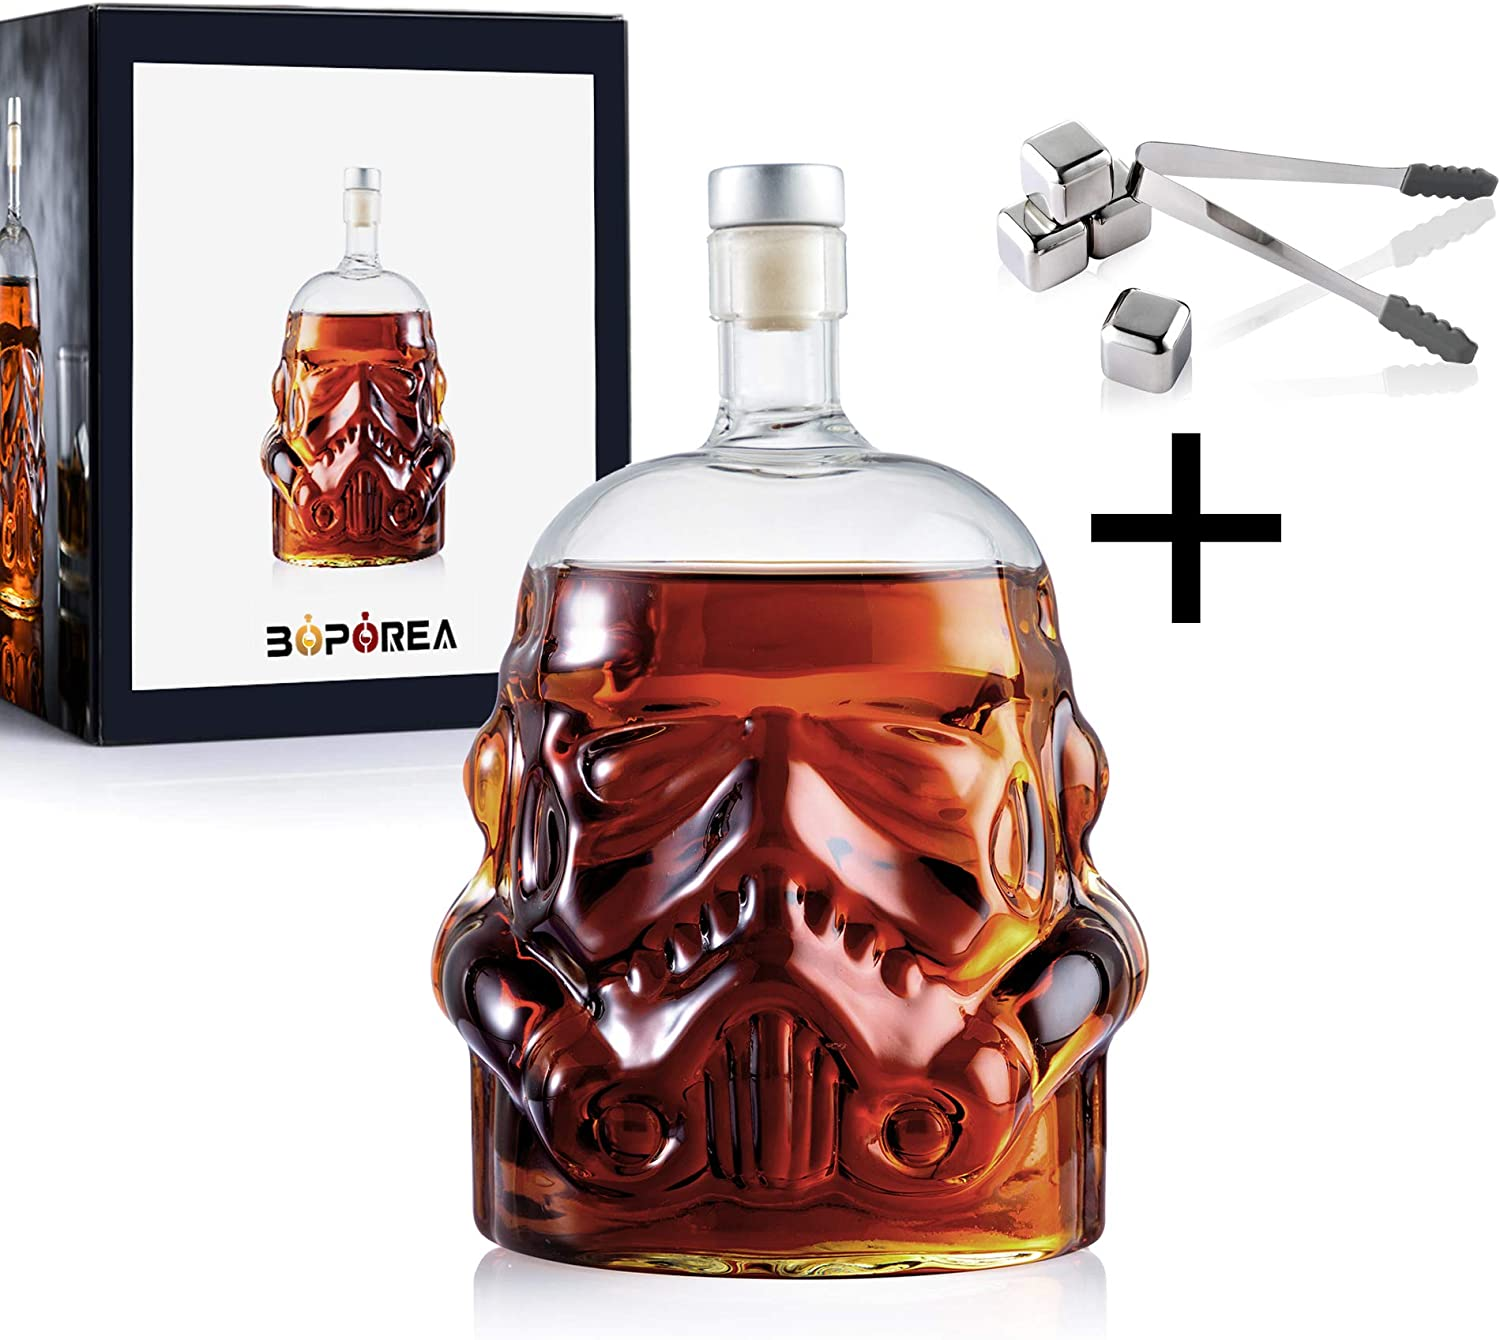 BOPOREA Transparent Creative Whiskey Flask Carafe Decanter with 4 Stainless Steel Ice Cubes and Ice Tong,Stormtrooper Bottle,Whiskey Carafe,for Wine,Brandy,Scotch,Bourbon,Vodka,Liquor-750ml